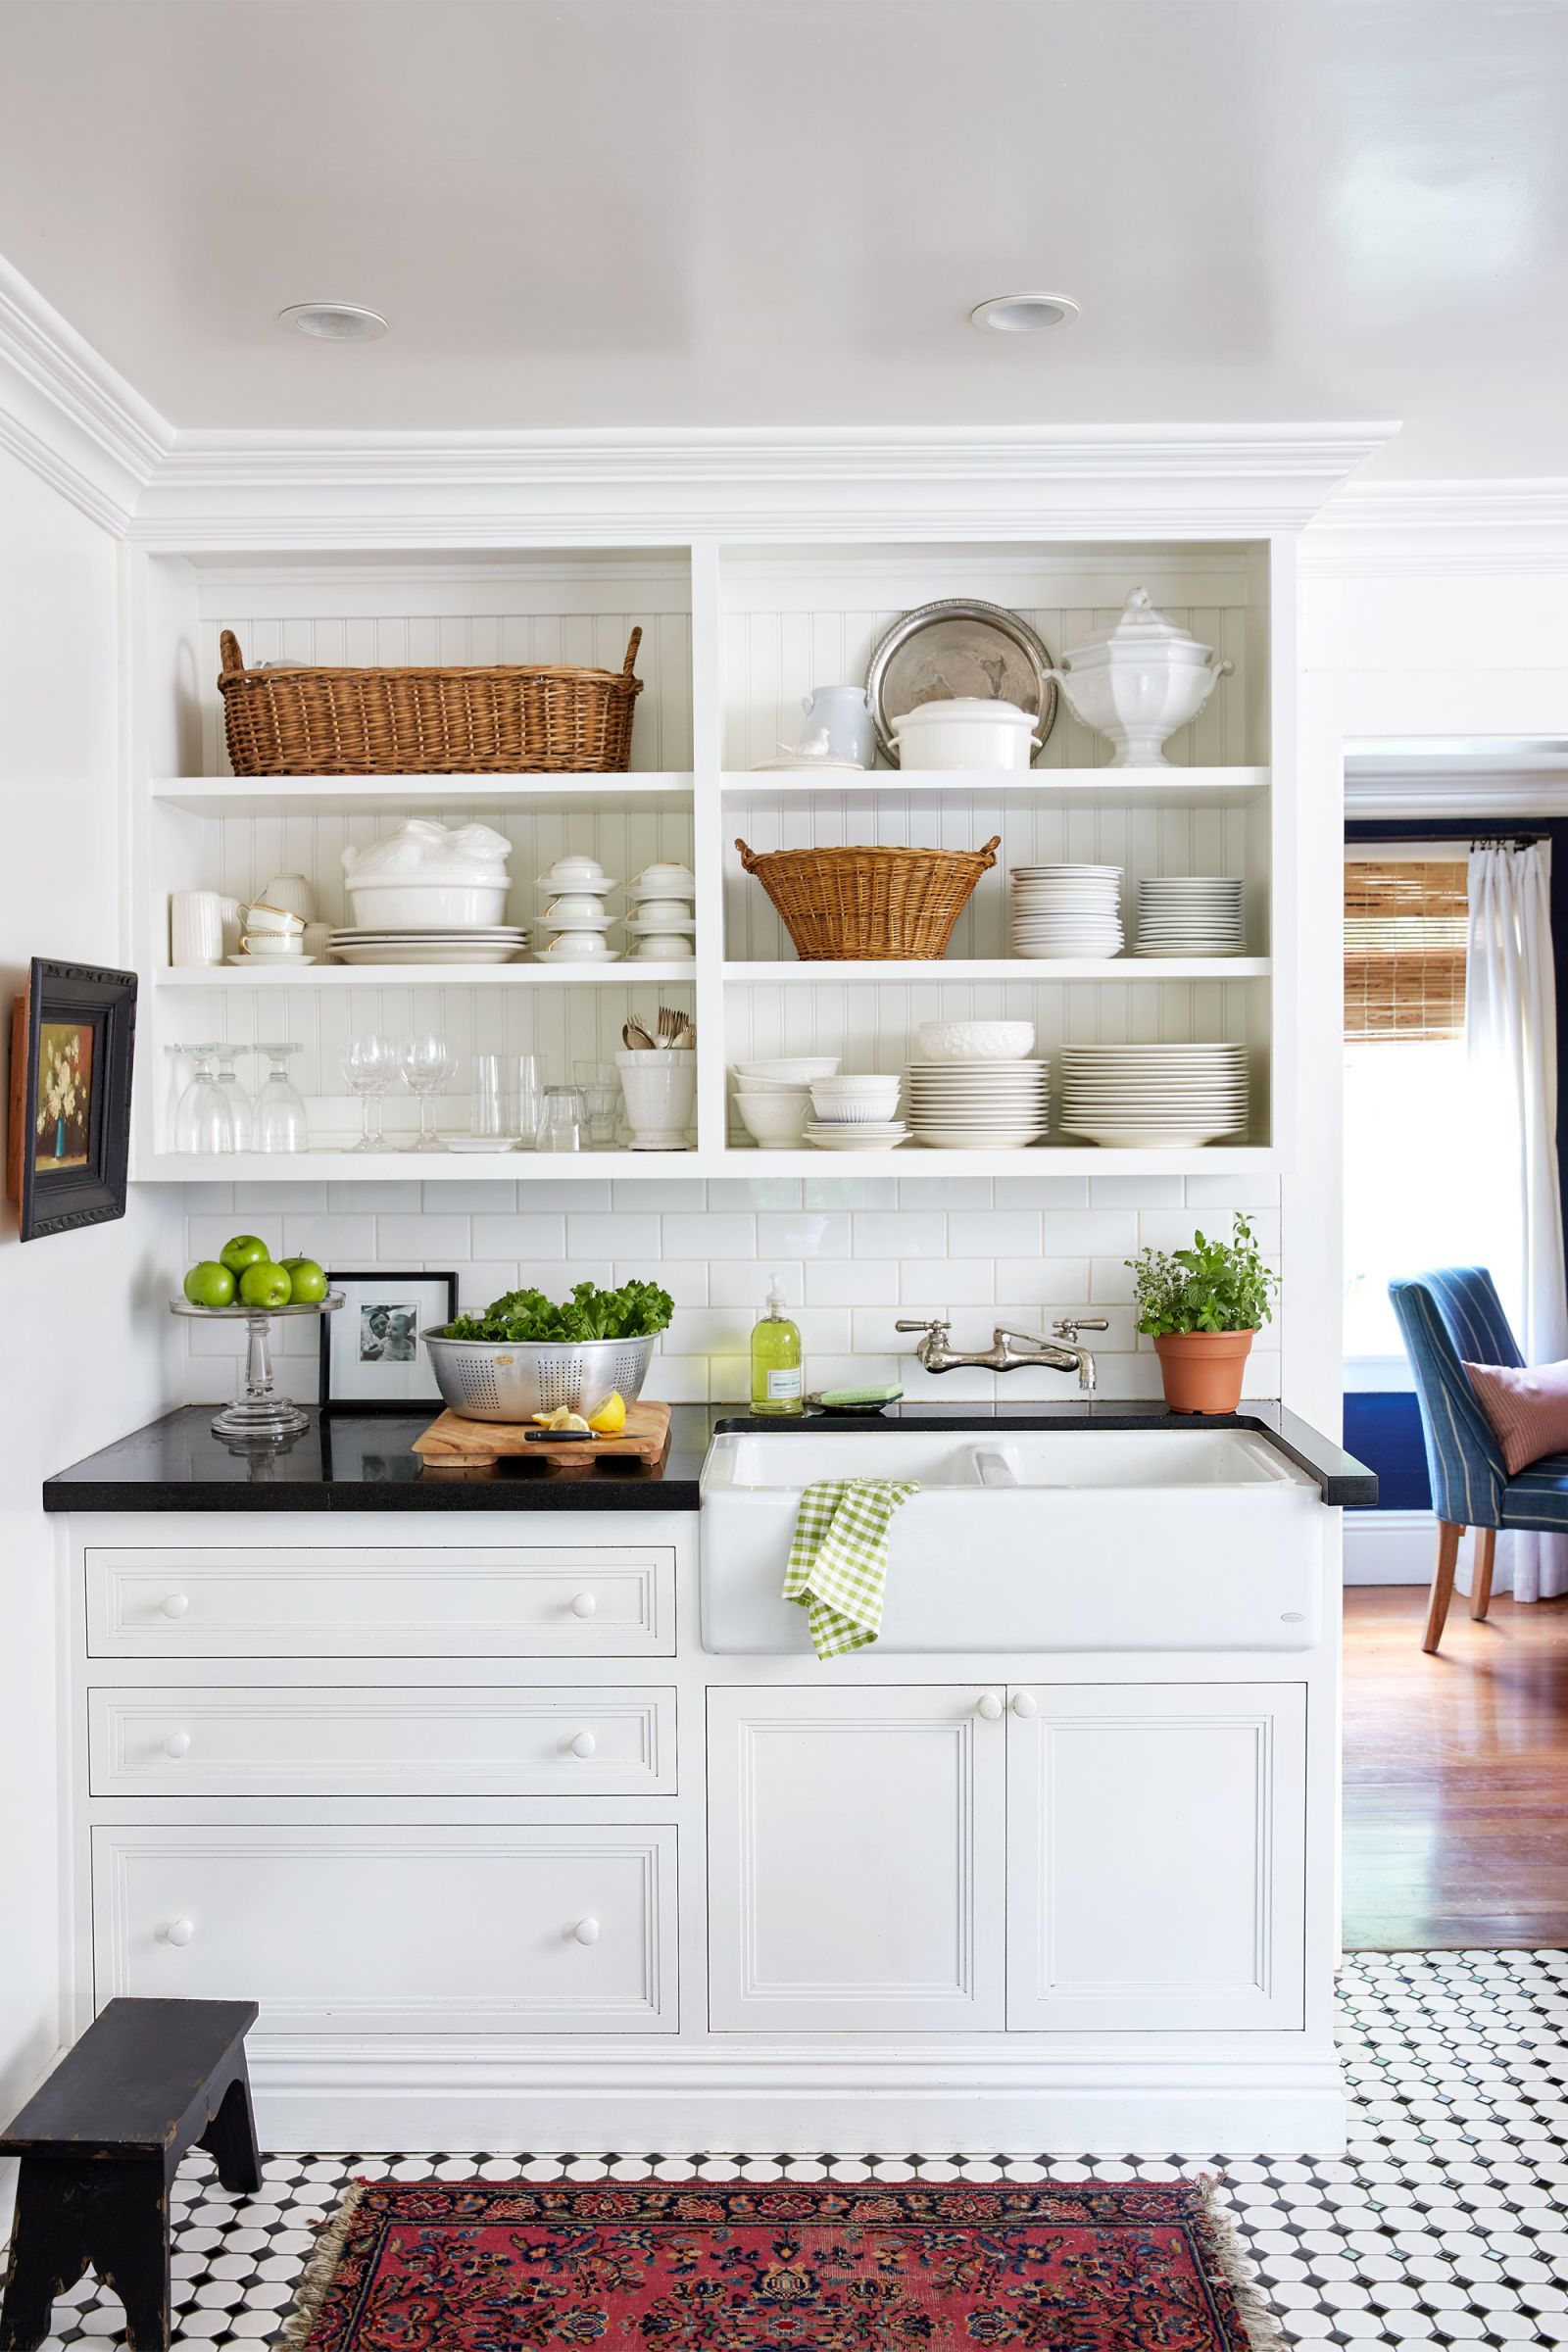 10 Must-Follow Rules For Making A Small Space Beautiful